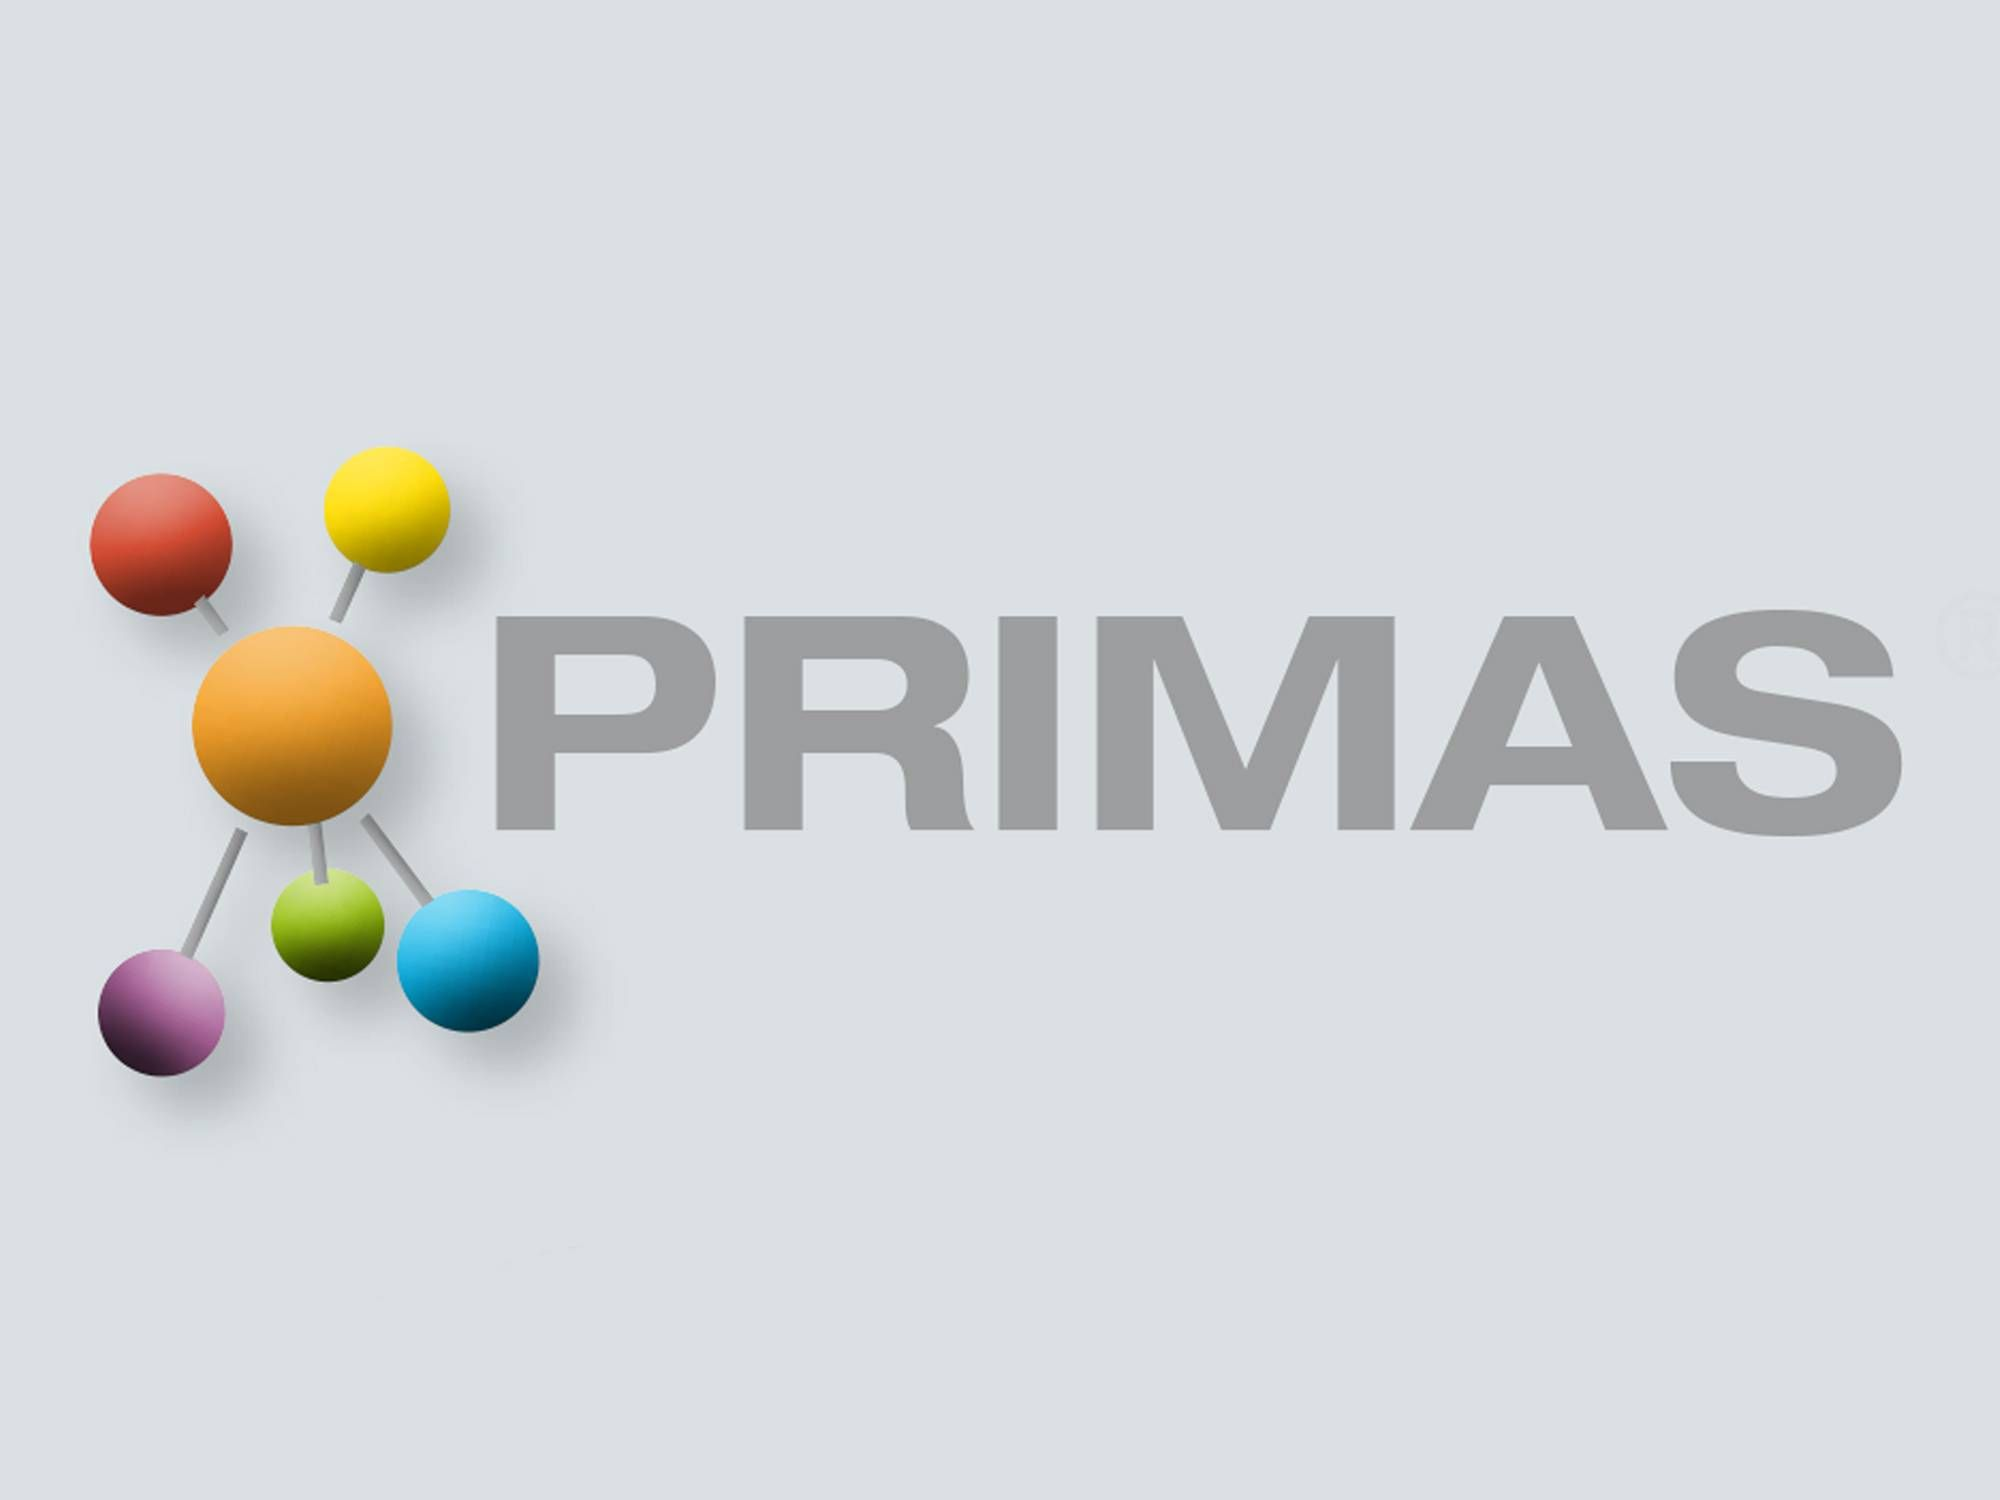 PRIMAS testmiddelmanagement-systeem